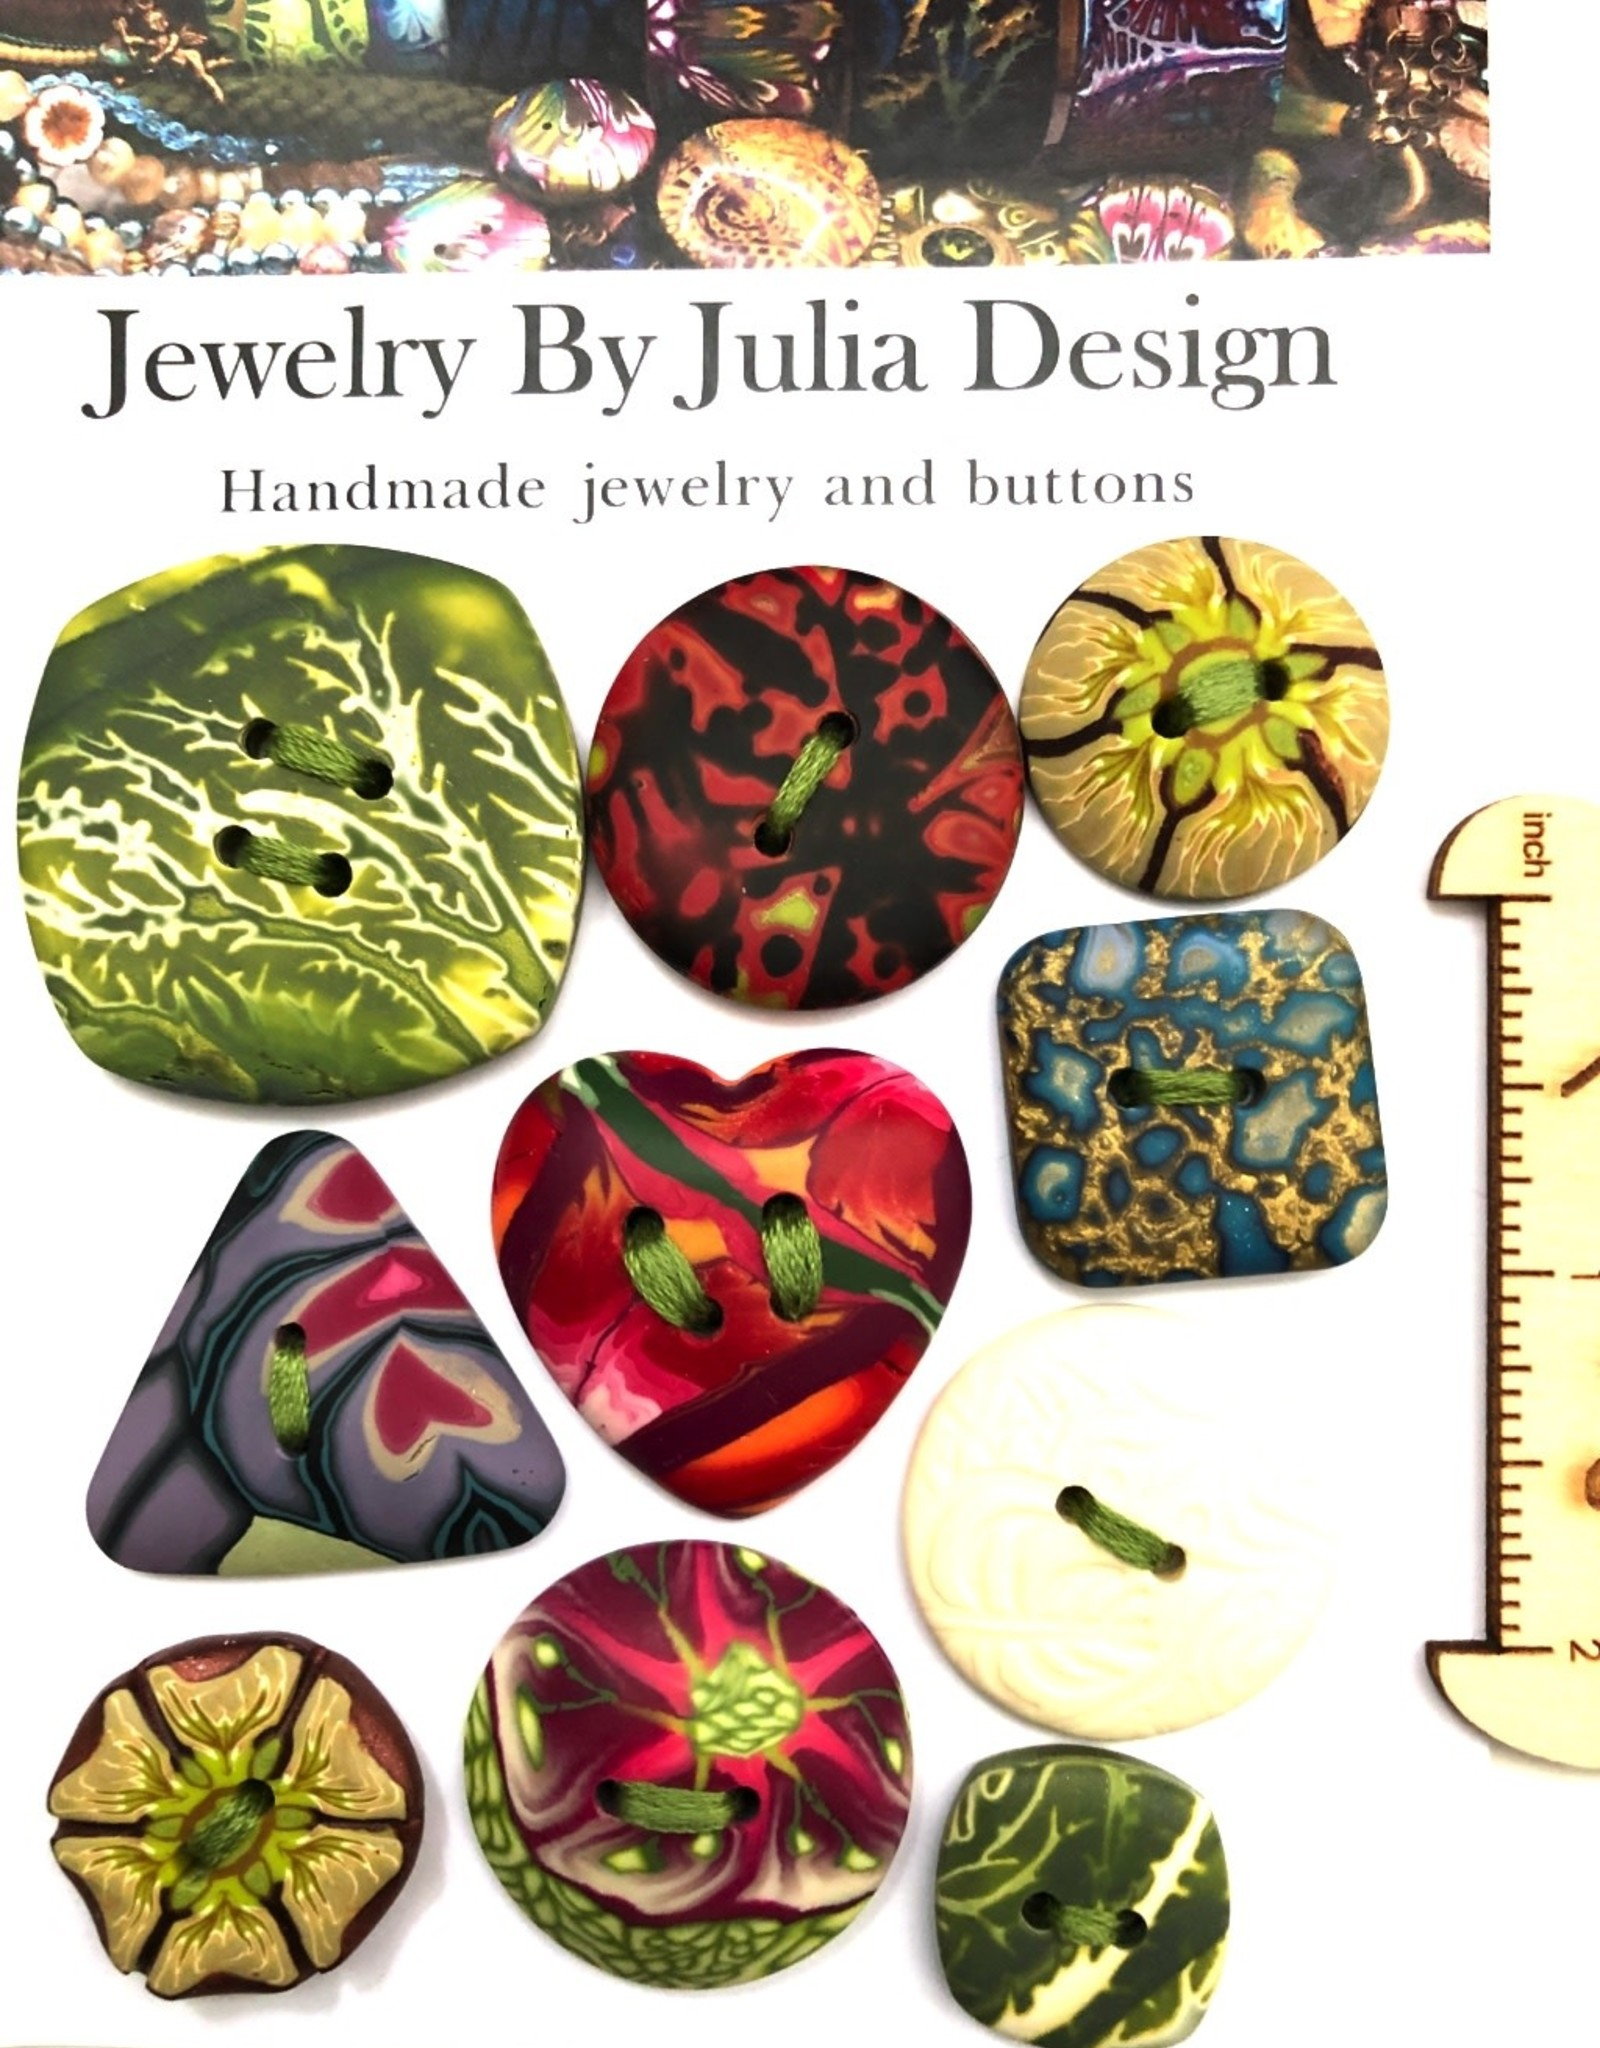 Jewelry by Julia Design Green/White Square Button (on misc card)